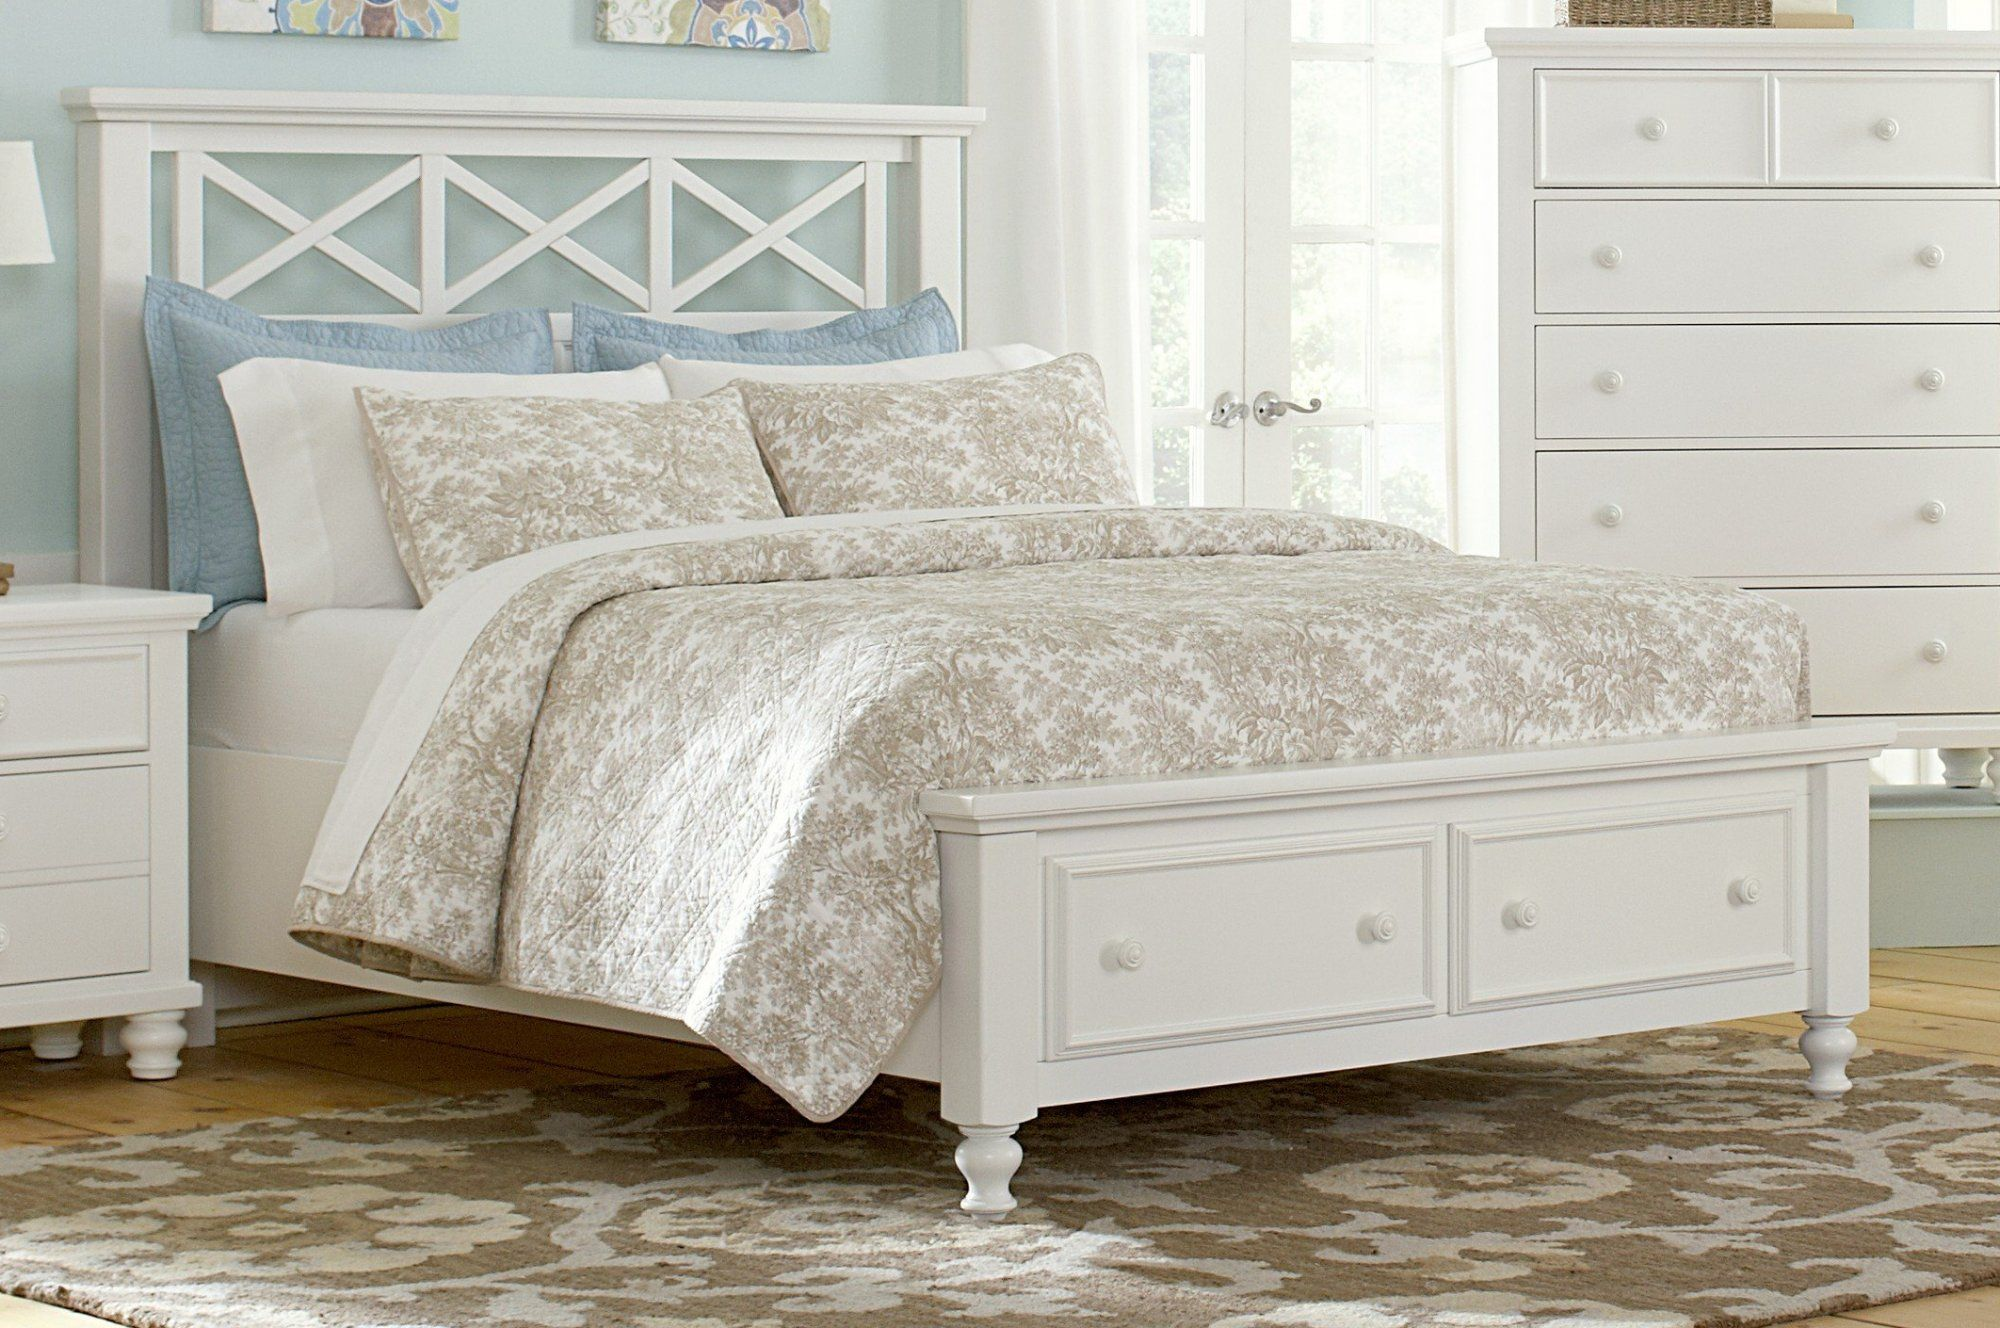 White Queen Bed Frames With Drawers Storage Underneath | Queen Beds ...